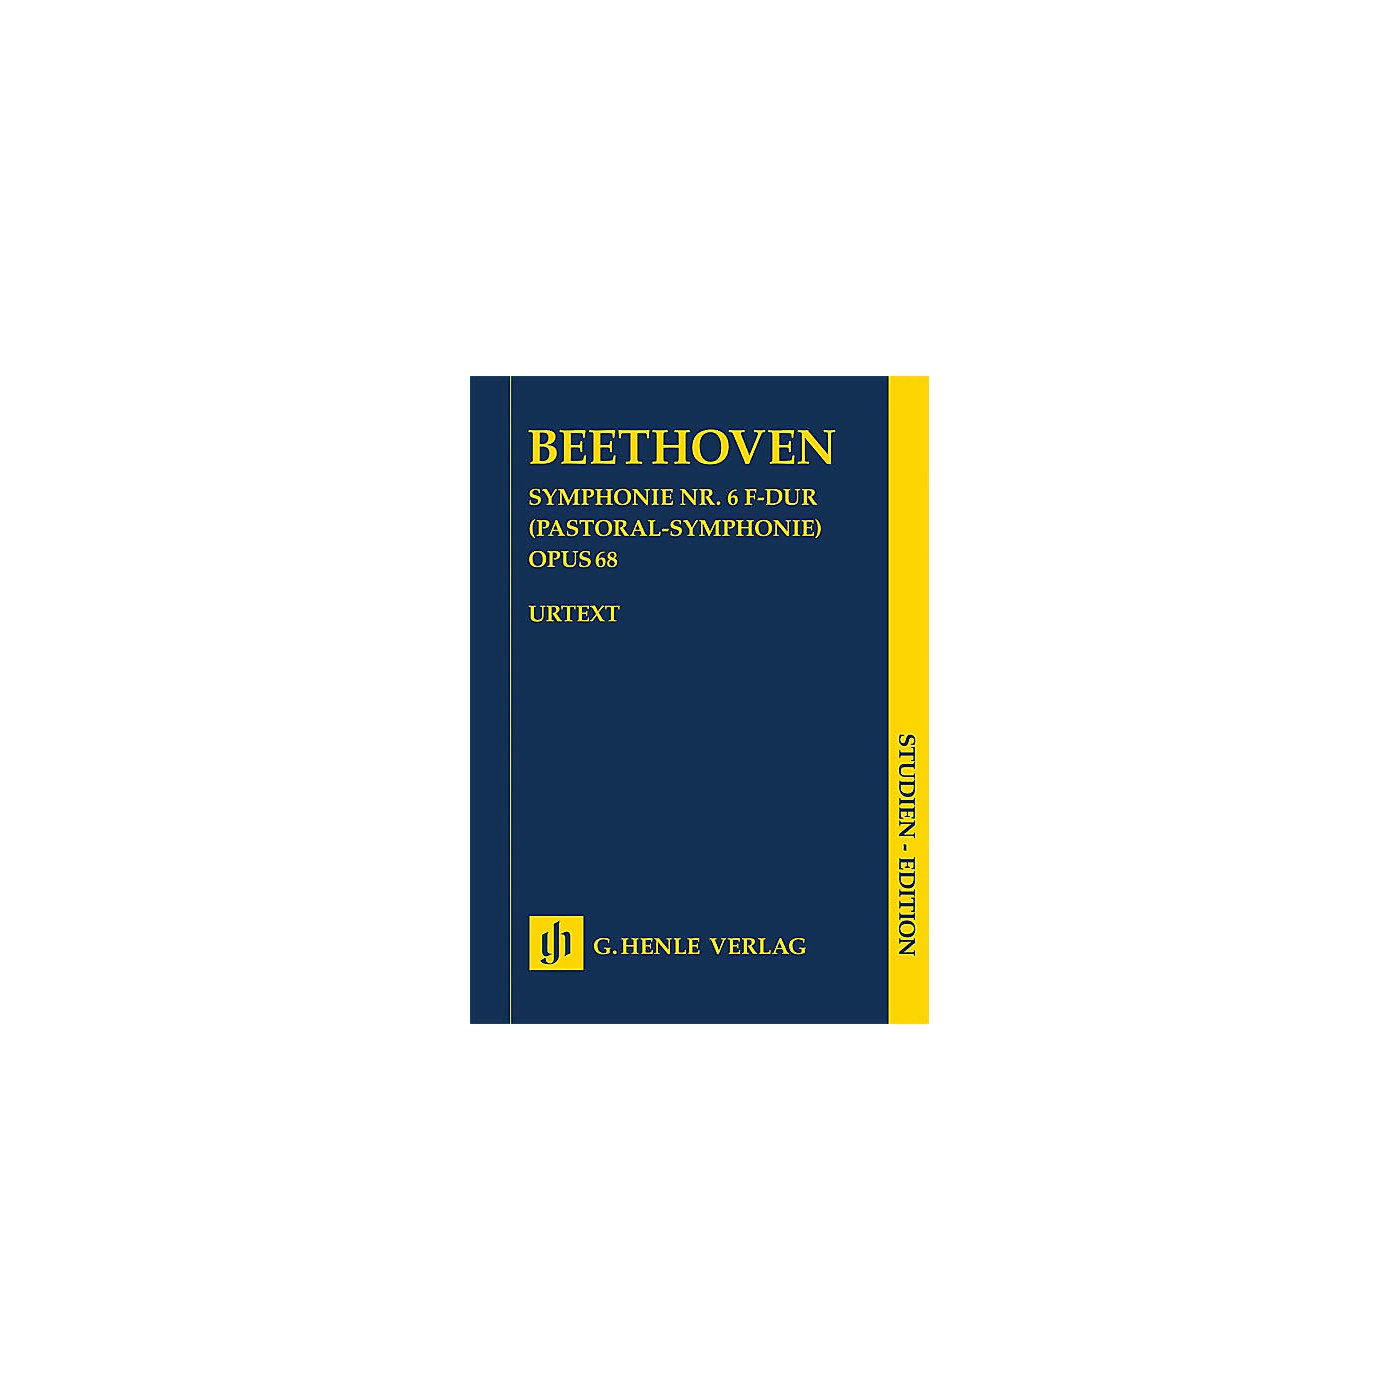 G. Henle Verlag Symphony No. 6 in F Major, Op. 68 (Pastoral Symphony) Henle Study Scores by Beethoven Edited by Dufner thumbnail